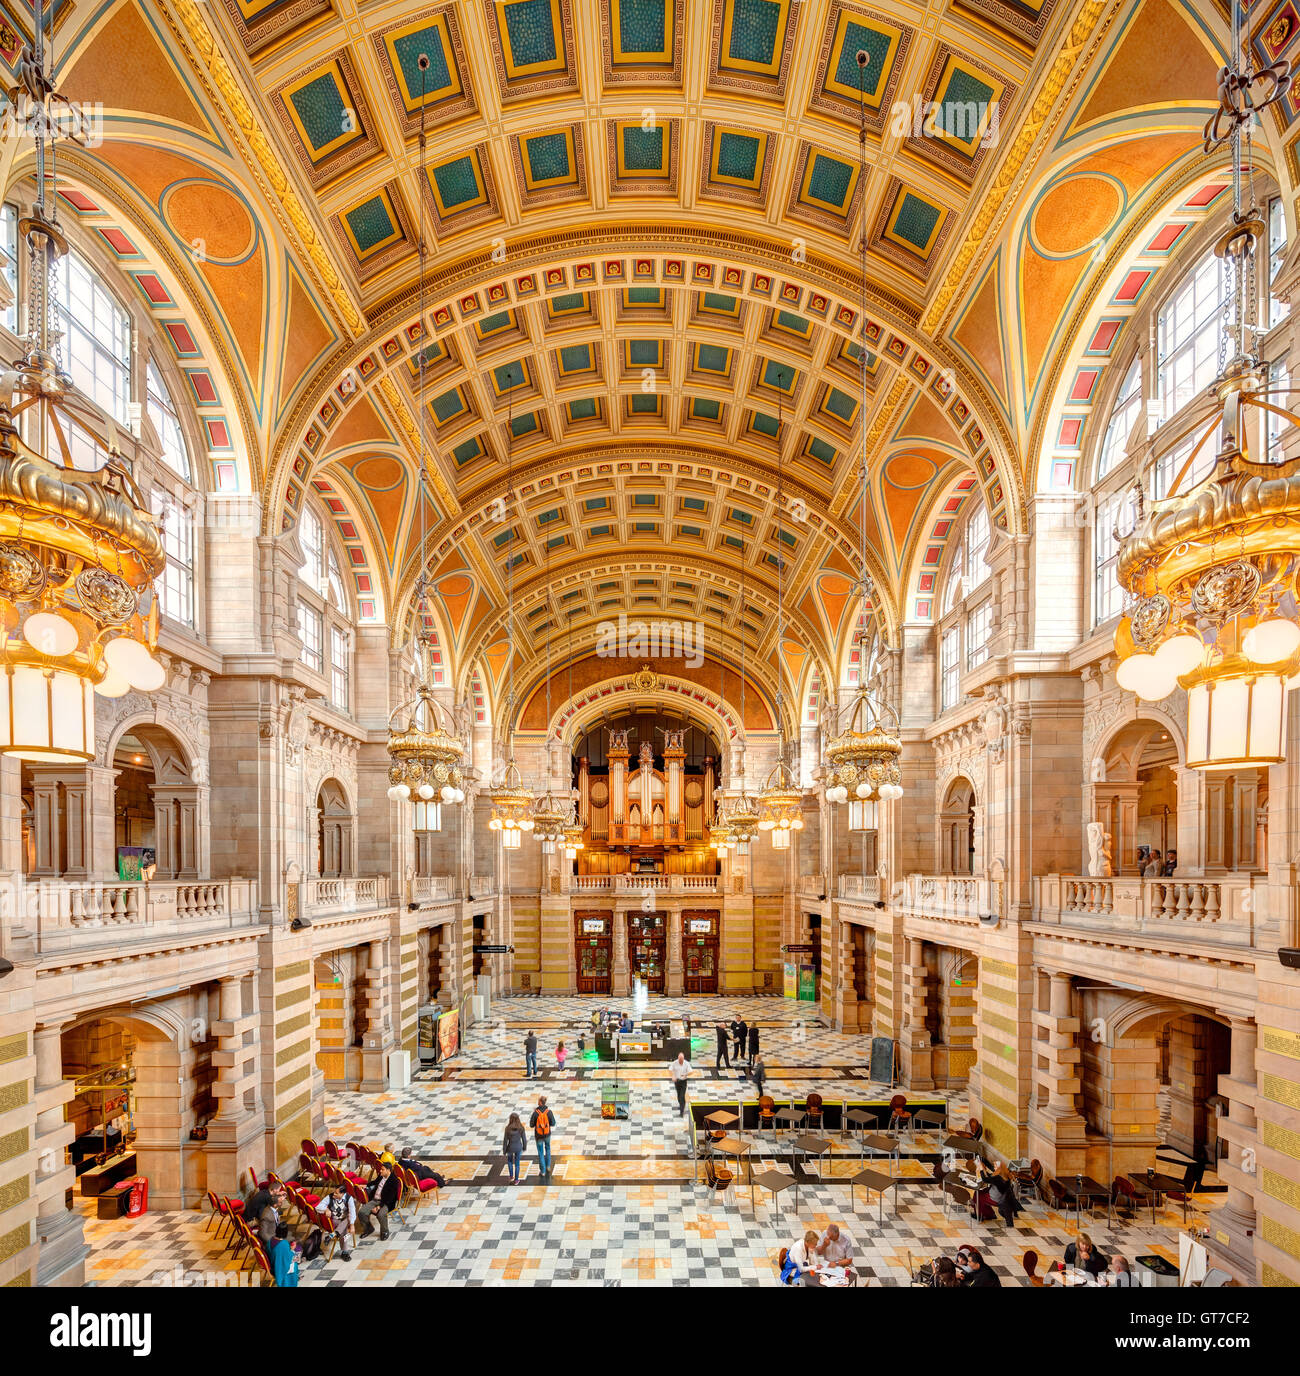 Glasgow Kelvingrove Art Gallery and Museum interni. Sala centrale e ingresso. Foto Stock